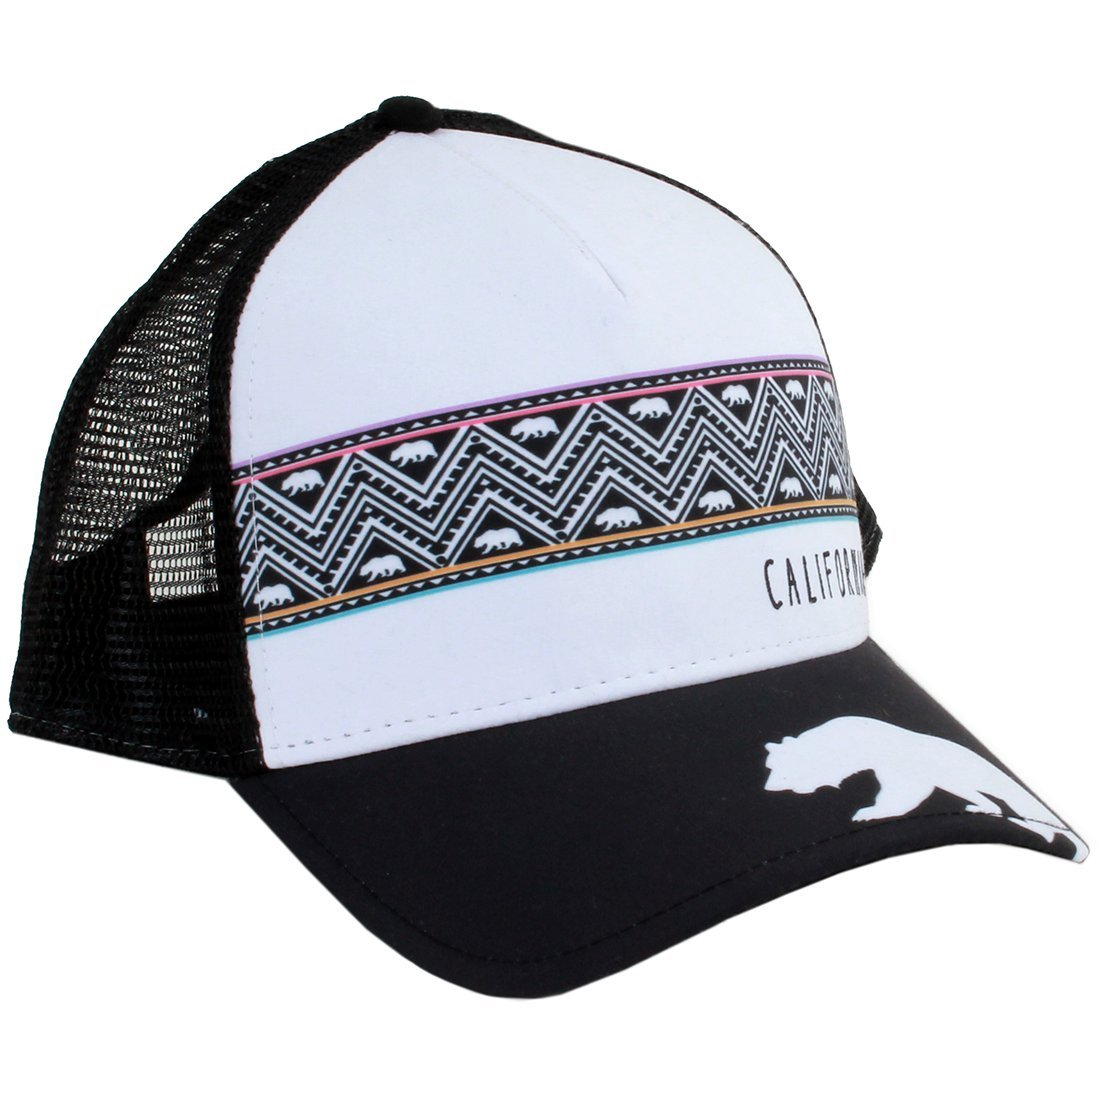 Dolphin Shirt Co California Bear Tribal Snapback Hat Curved Bill Black Mesh  at Amazon Men s Clothing store  466125b6d23